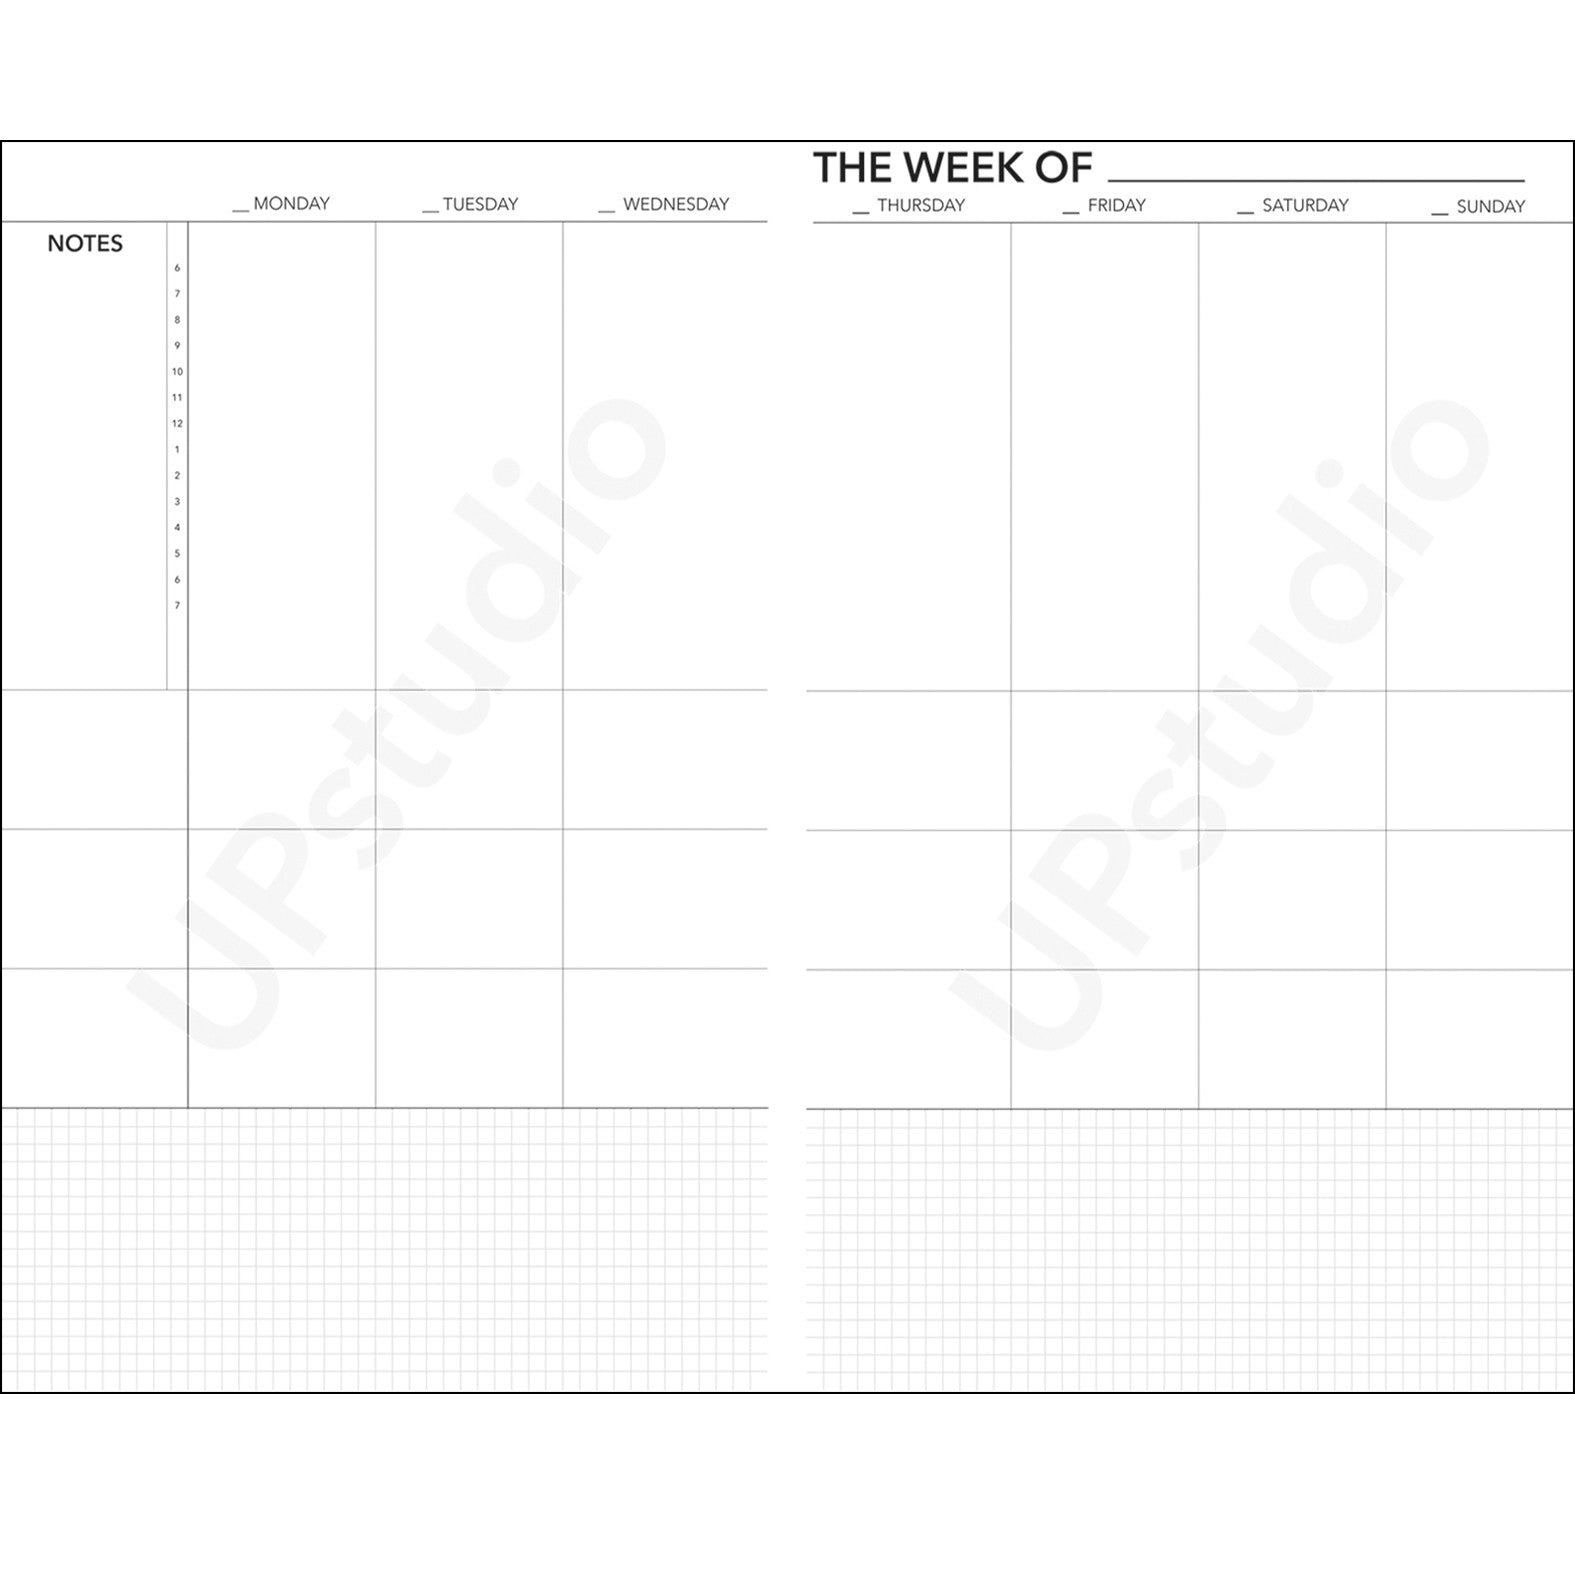 Home products technical information downloads - Home Products 2016 Upstudio Planner Free Weekly Layout Download